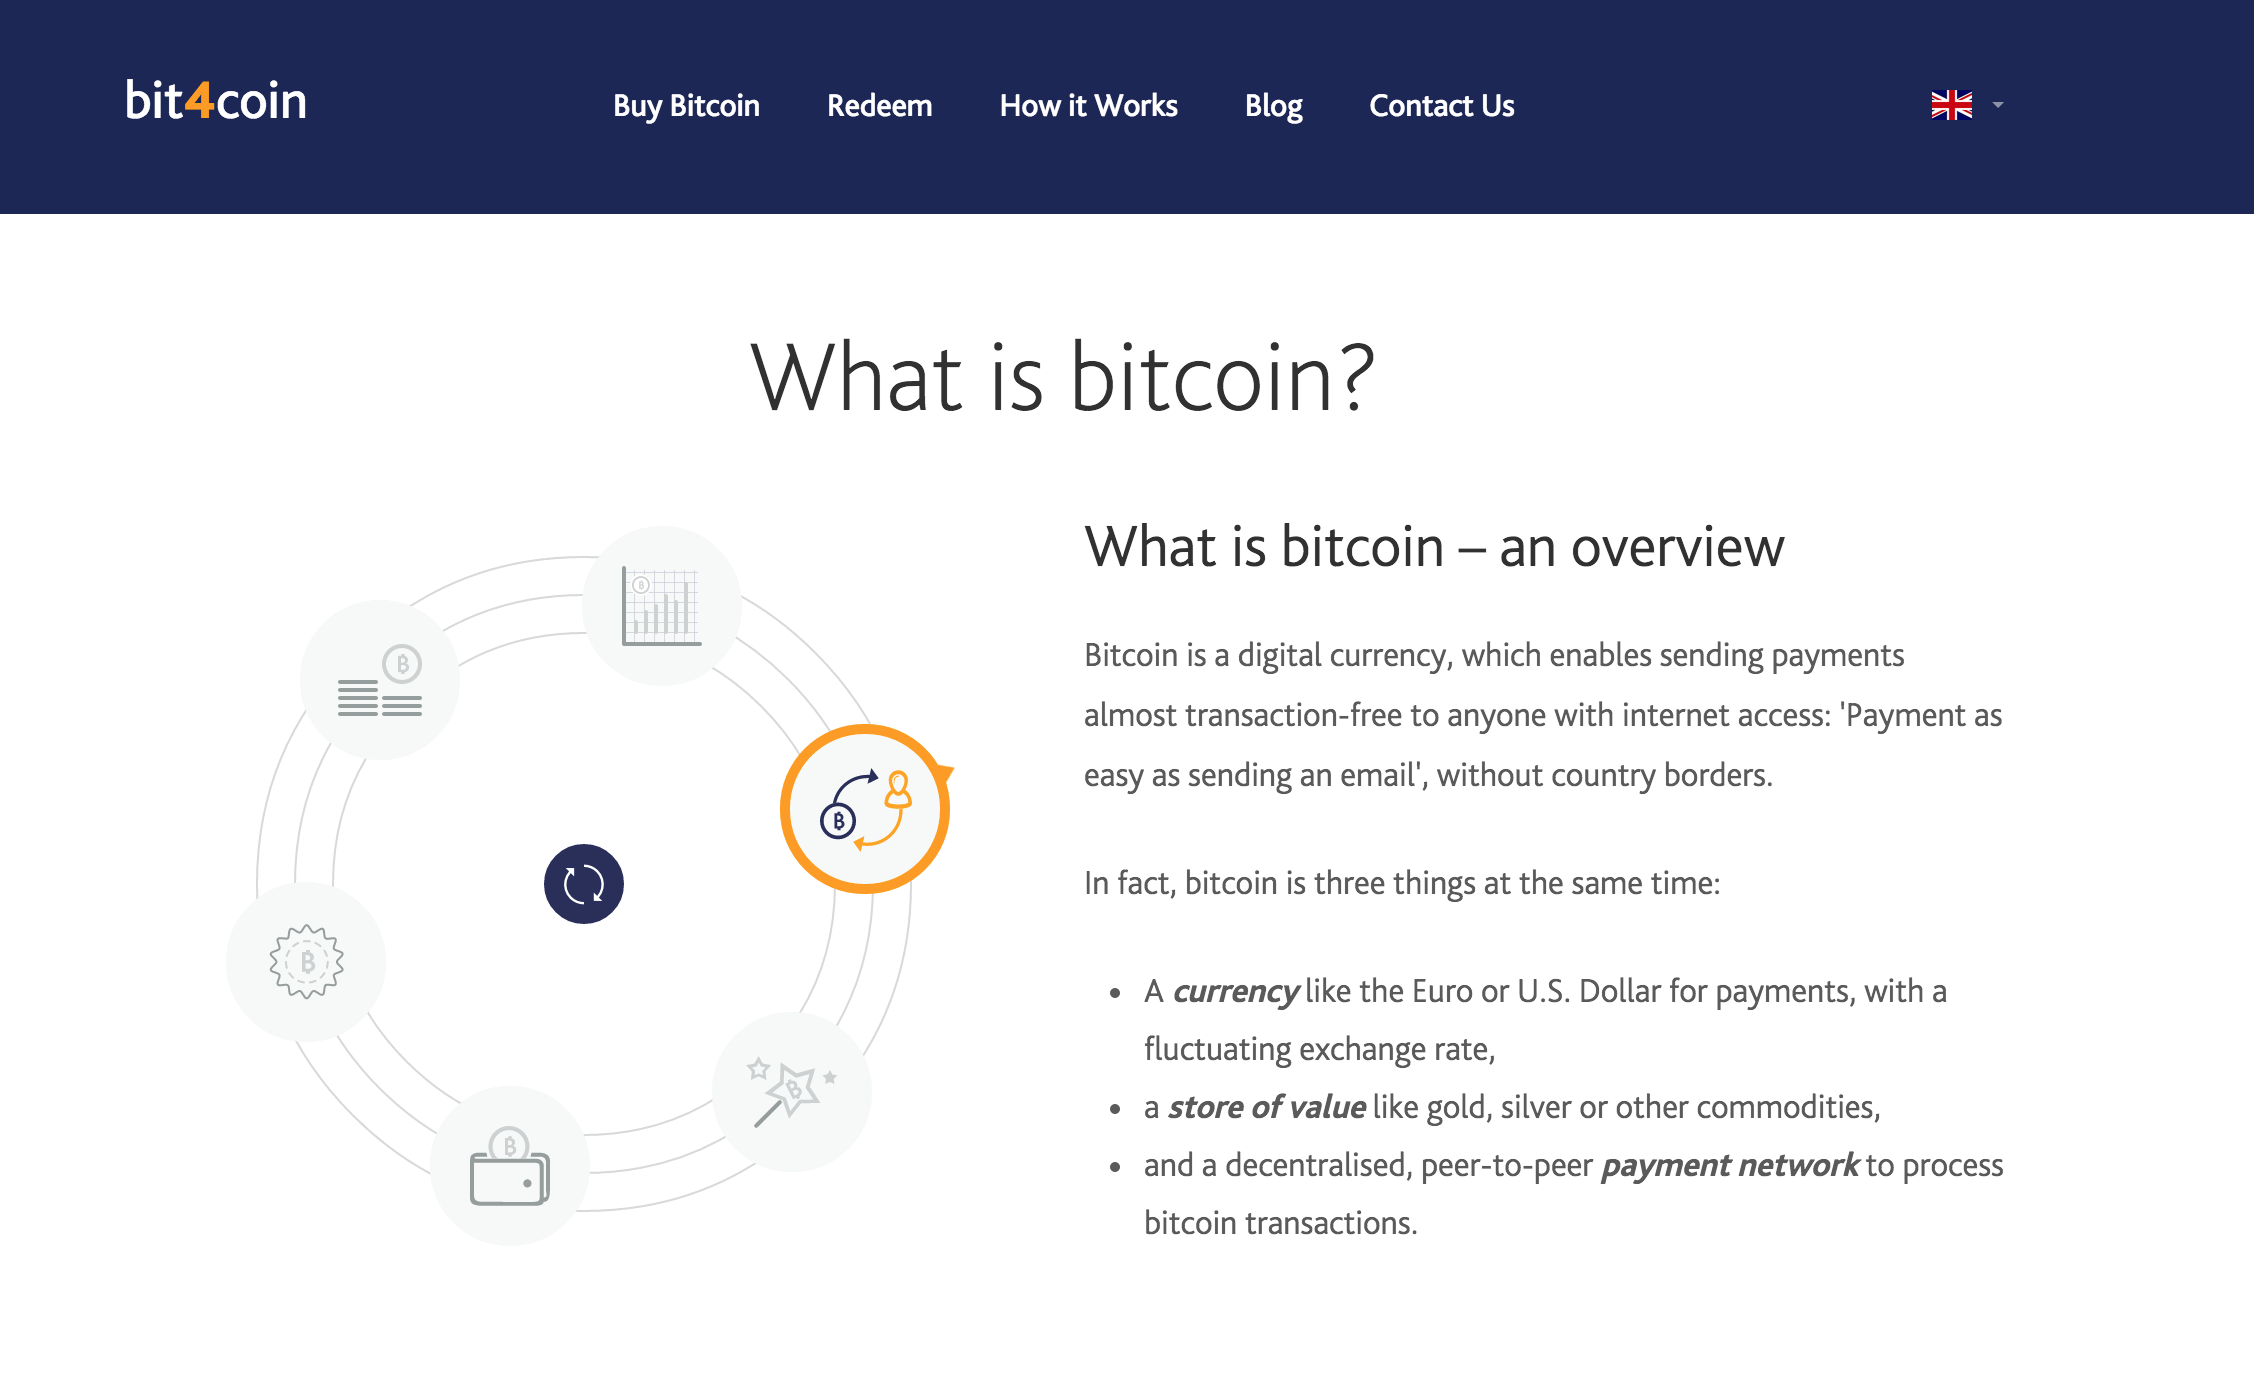 New bit4coin more on bitcoin